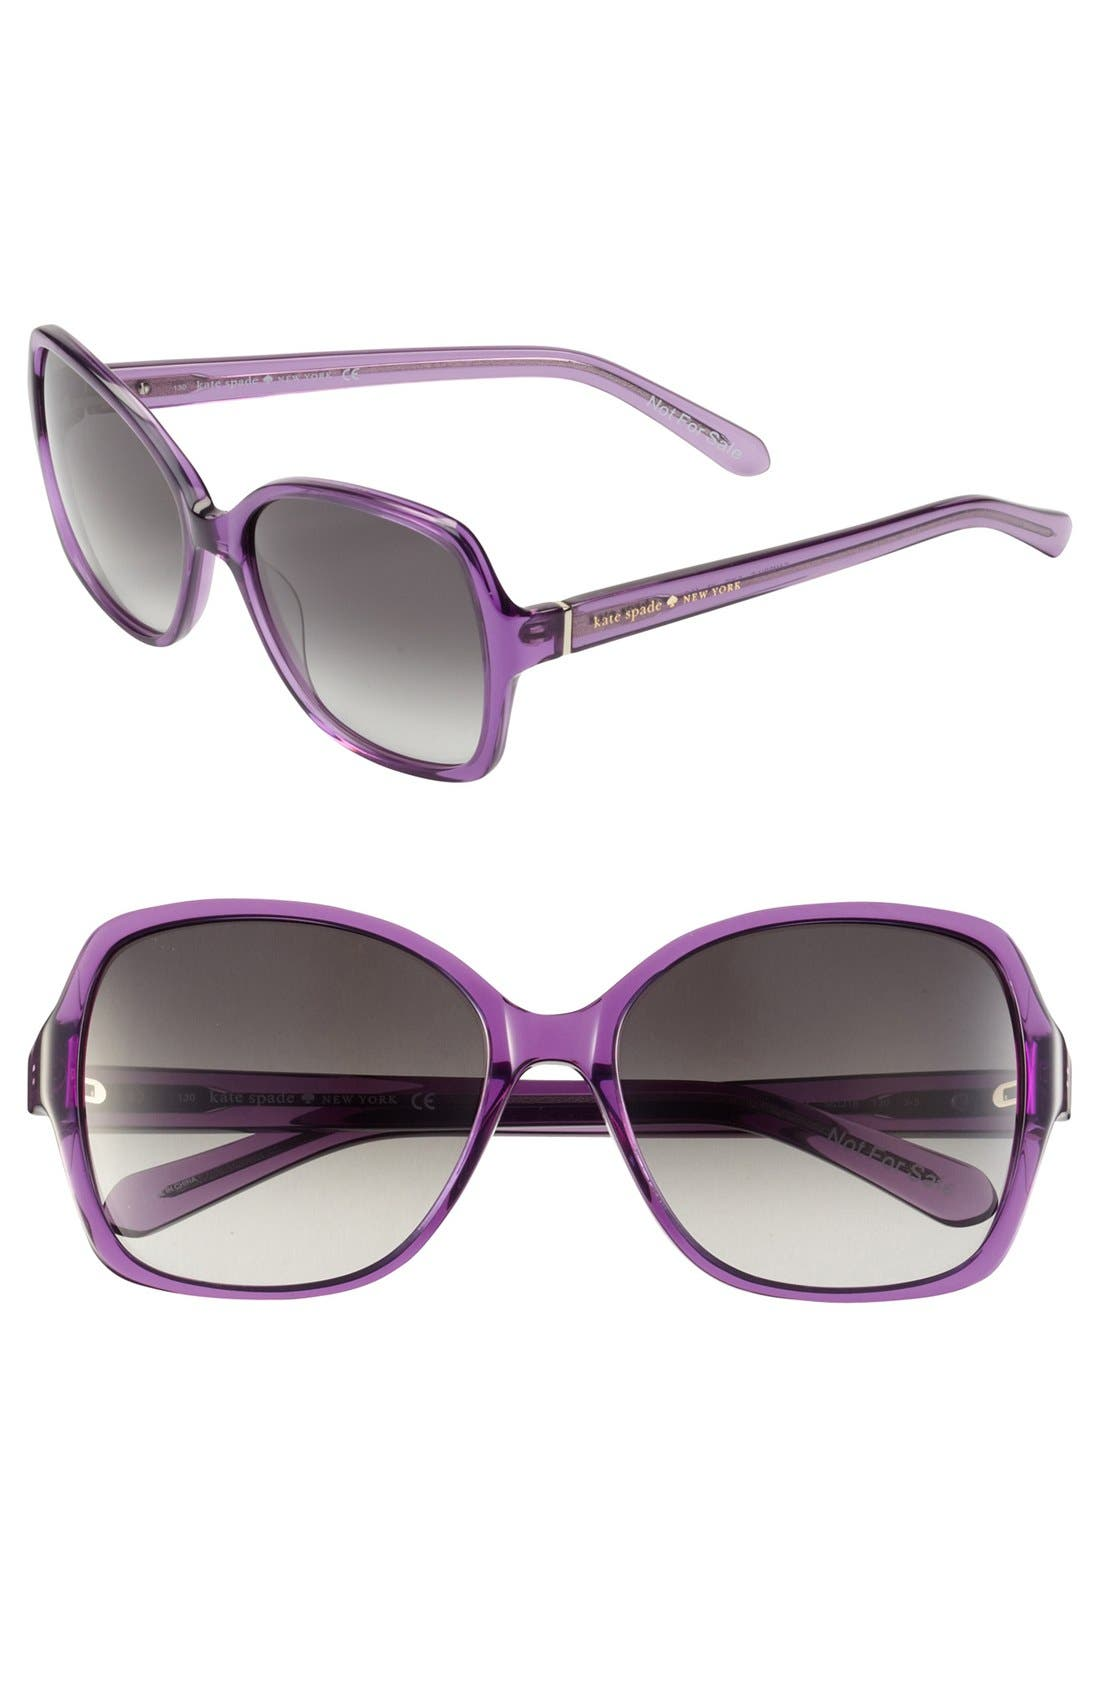 Main Image - kate spade new york 'cambria' 56mm sunglasses